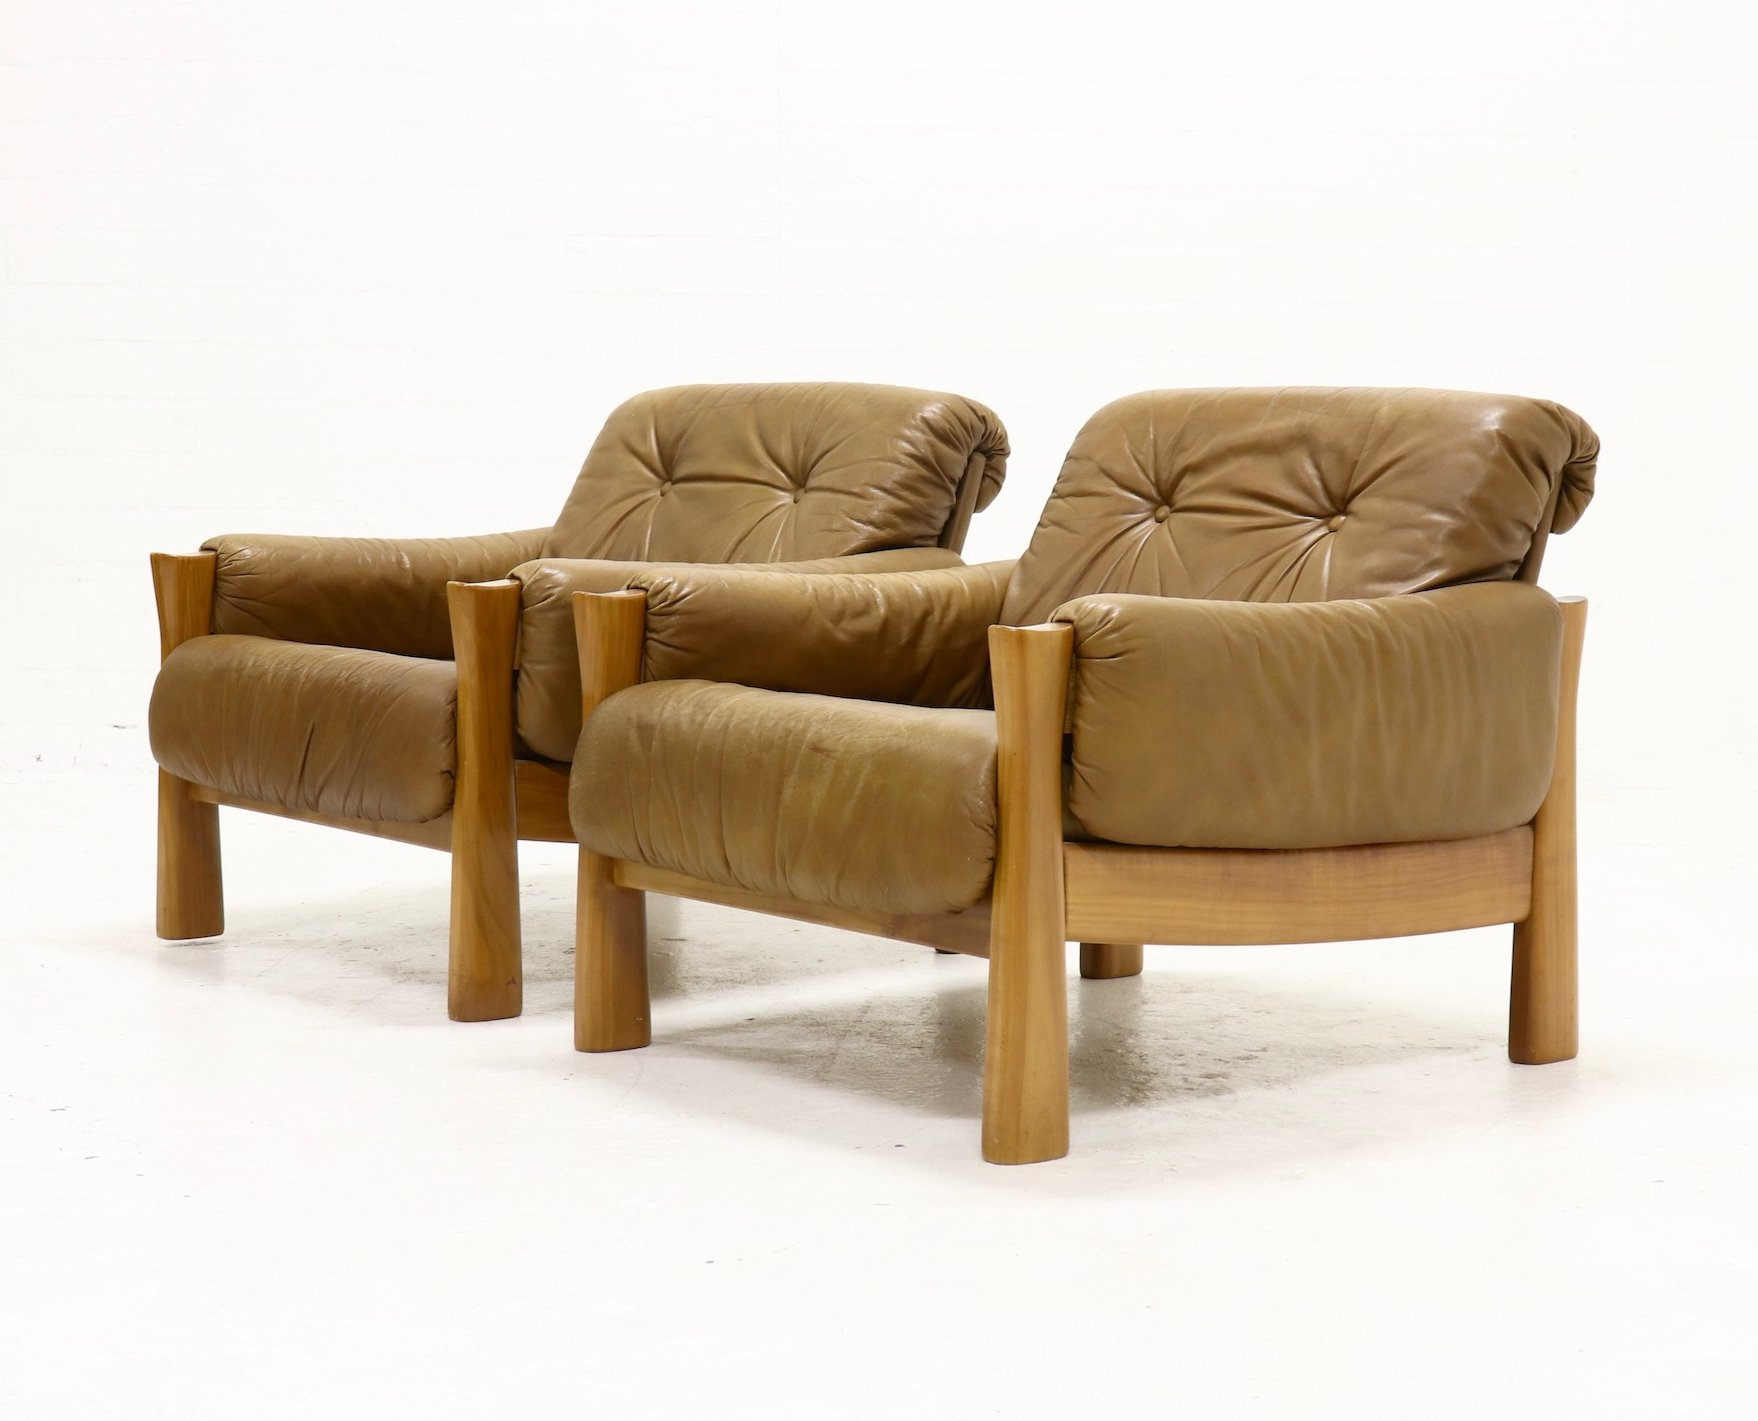 set of 2 mid century armchairs in leather 1960s